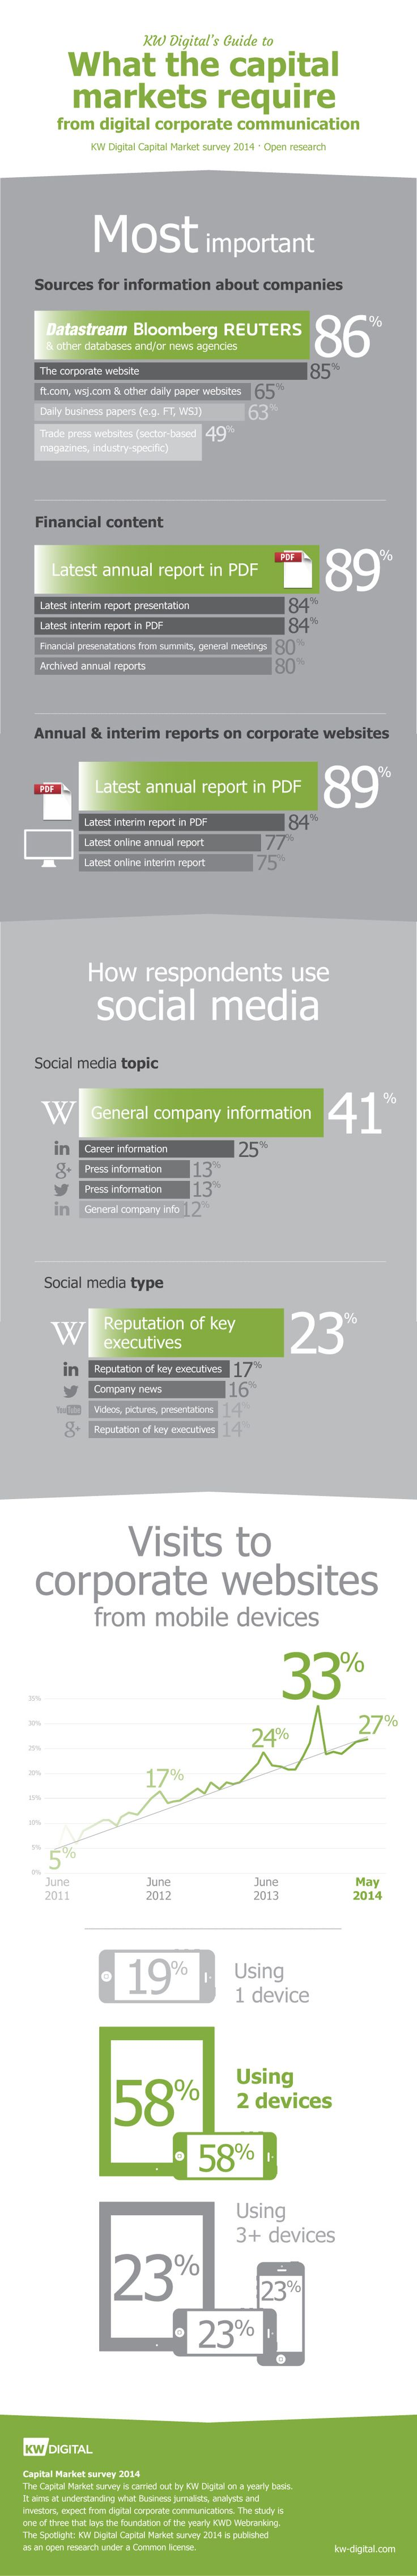 KW Digital Capital markets Survey 2014 - Overview